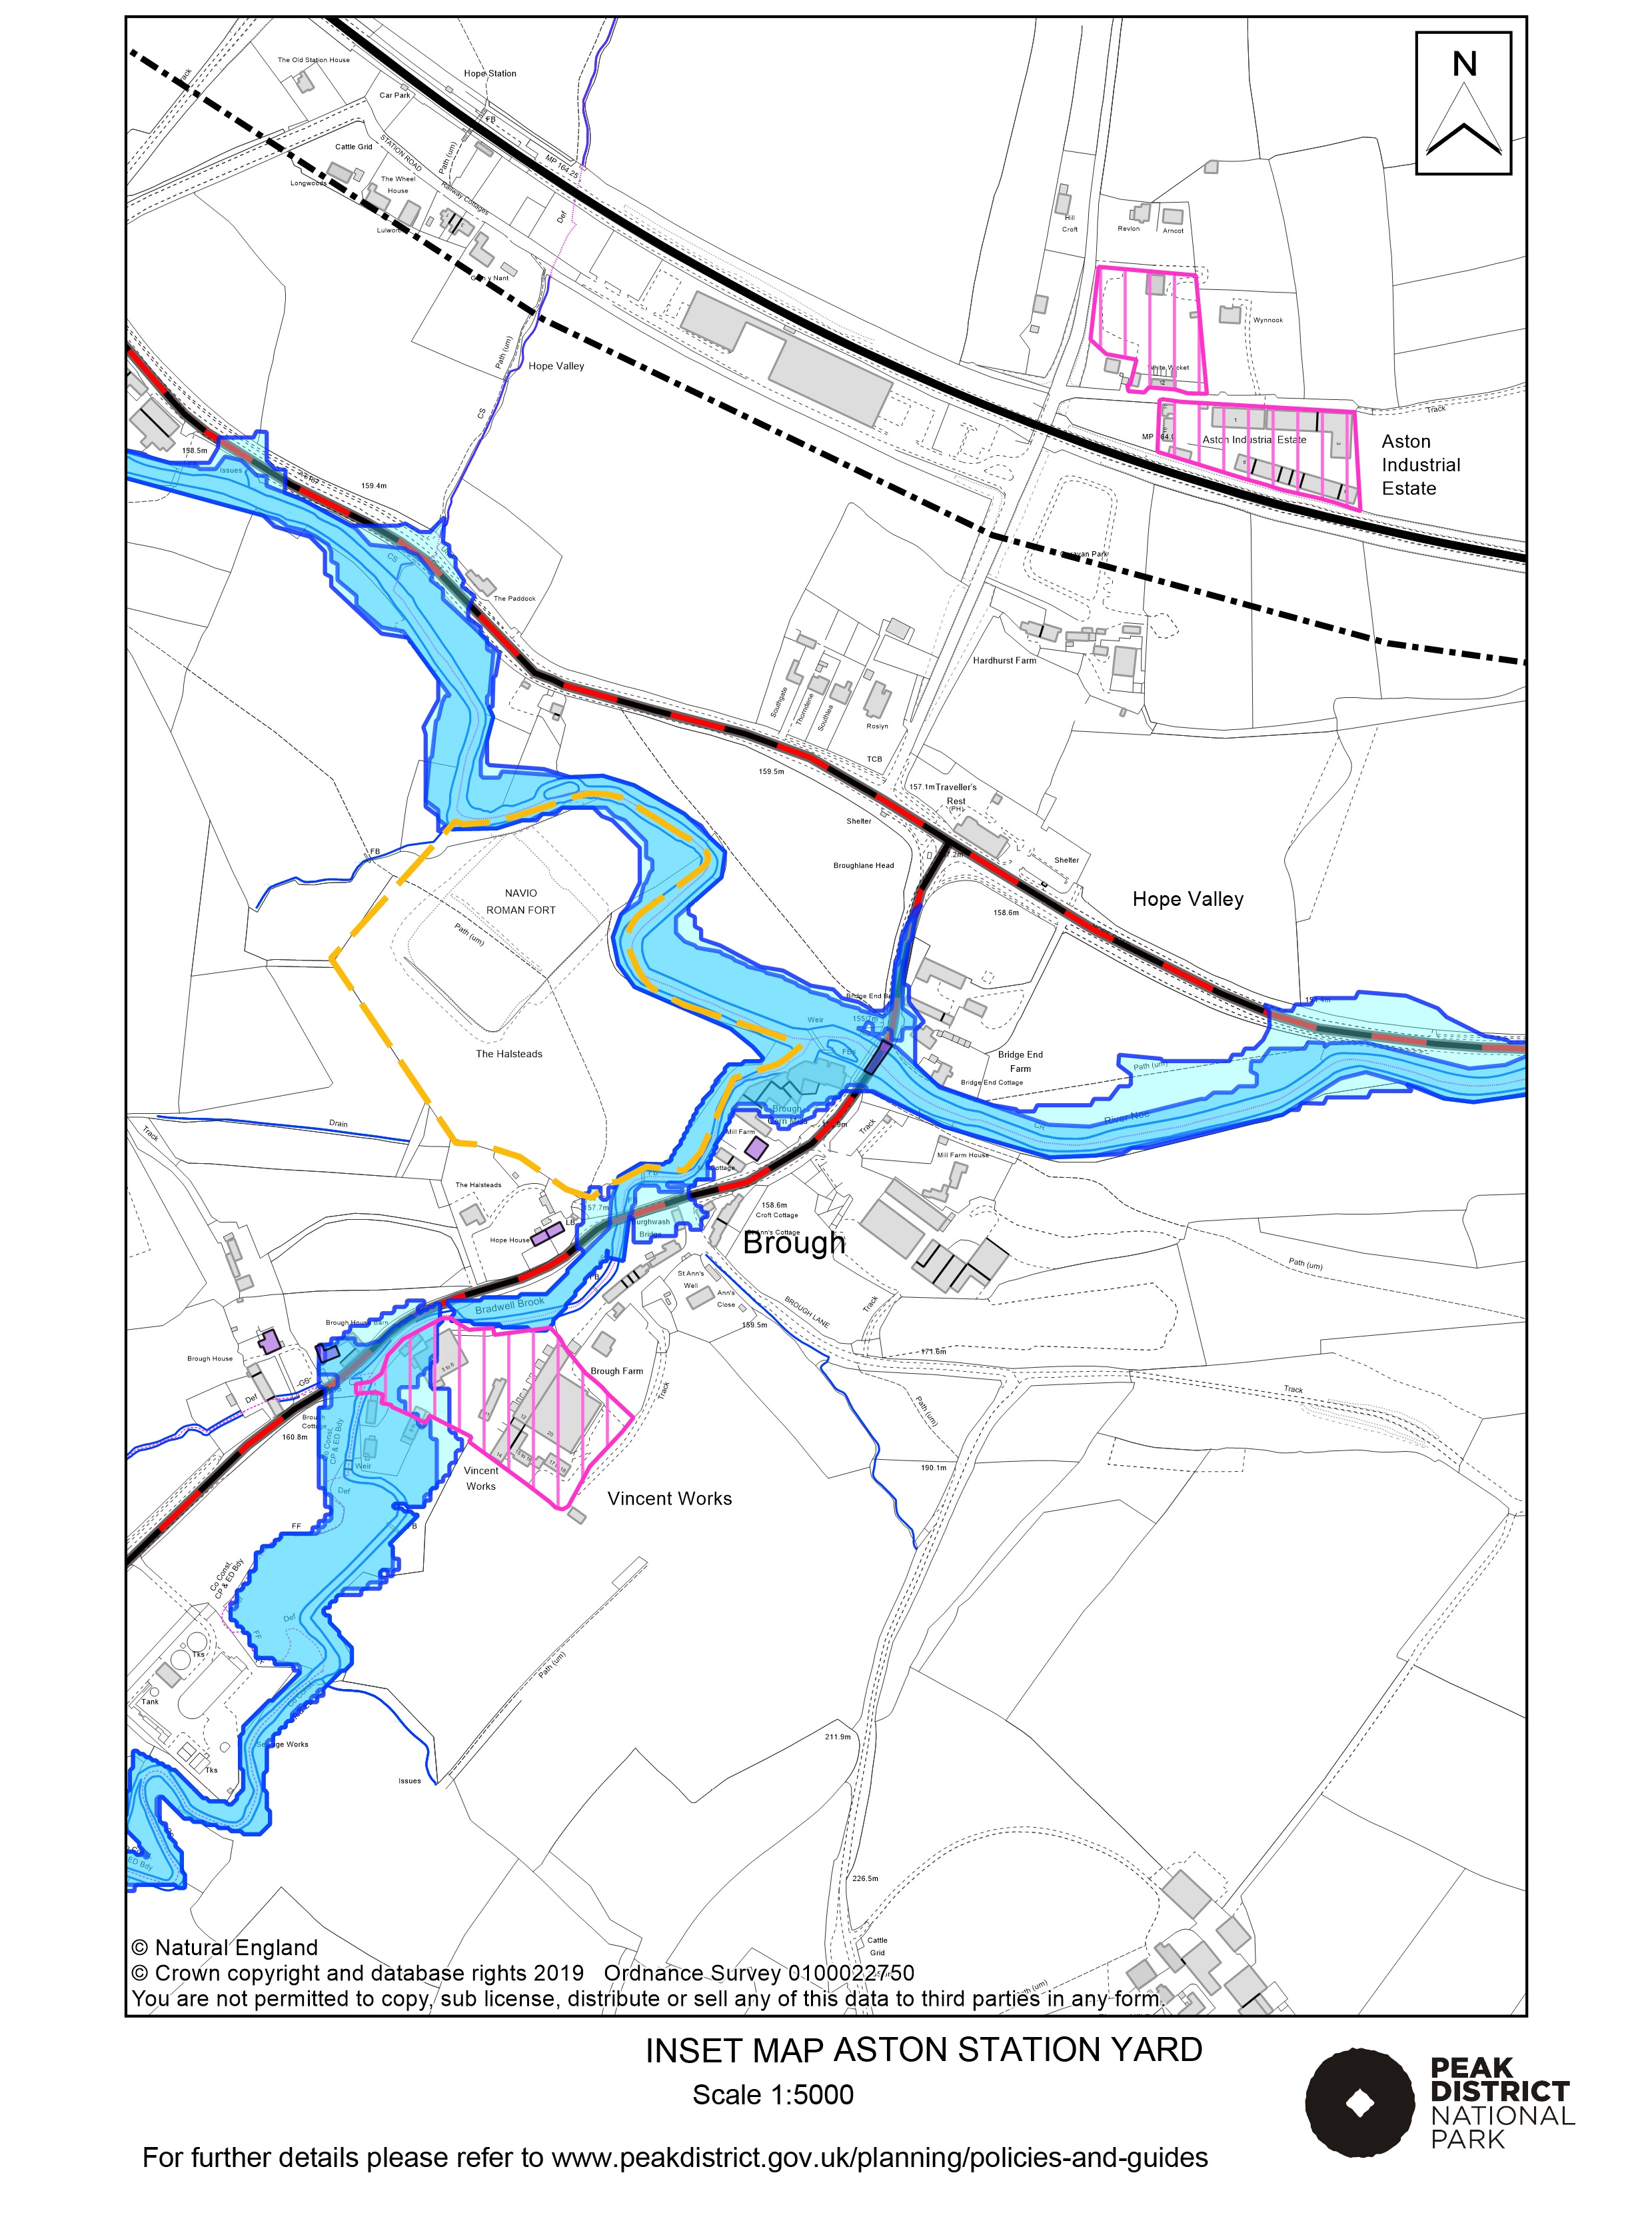 Local Plan Proposals Map: Aston Station Yard